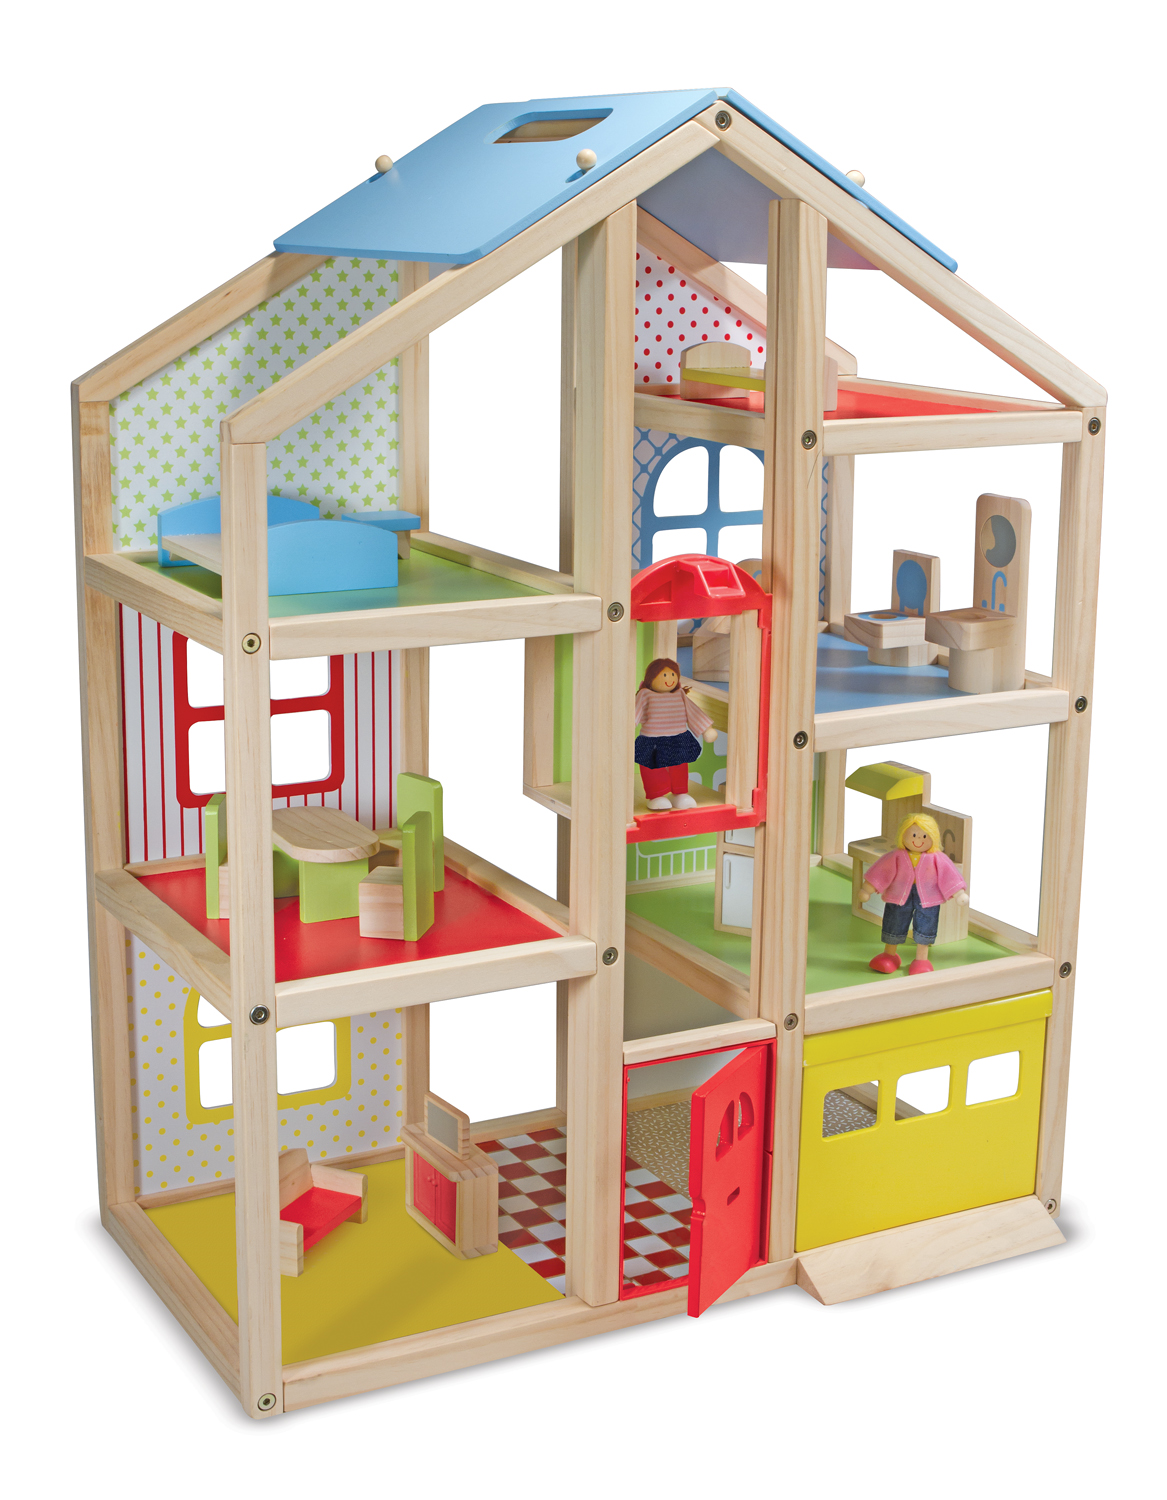 Toys For House : Wood dollhouse furniture at the galleria